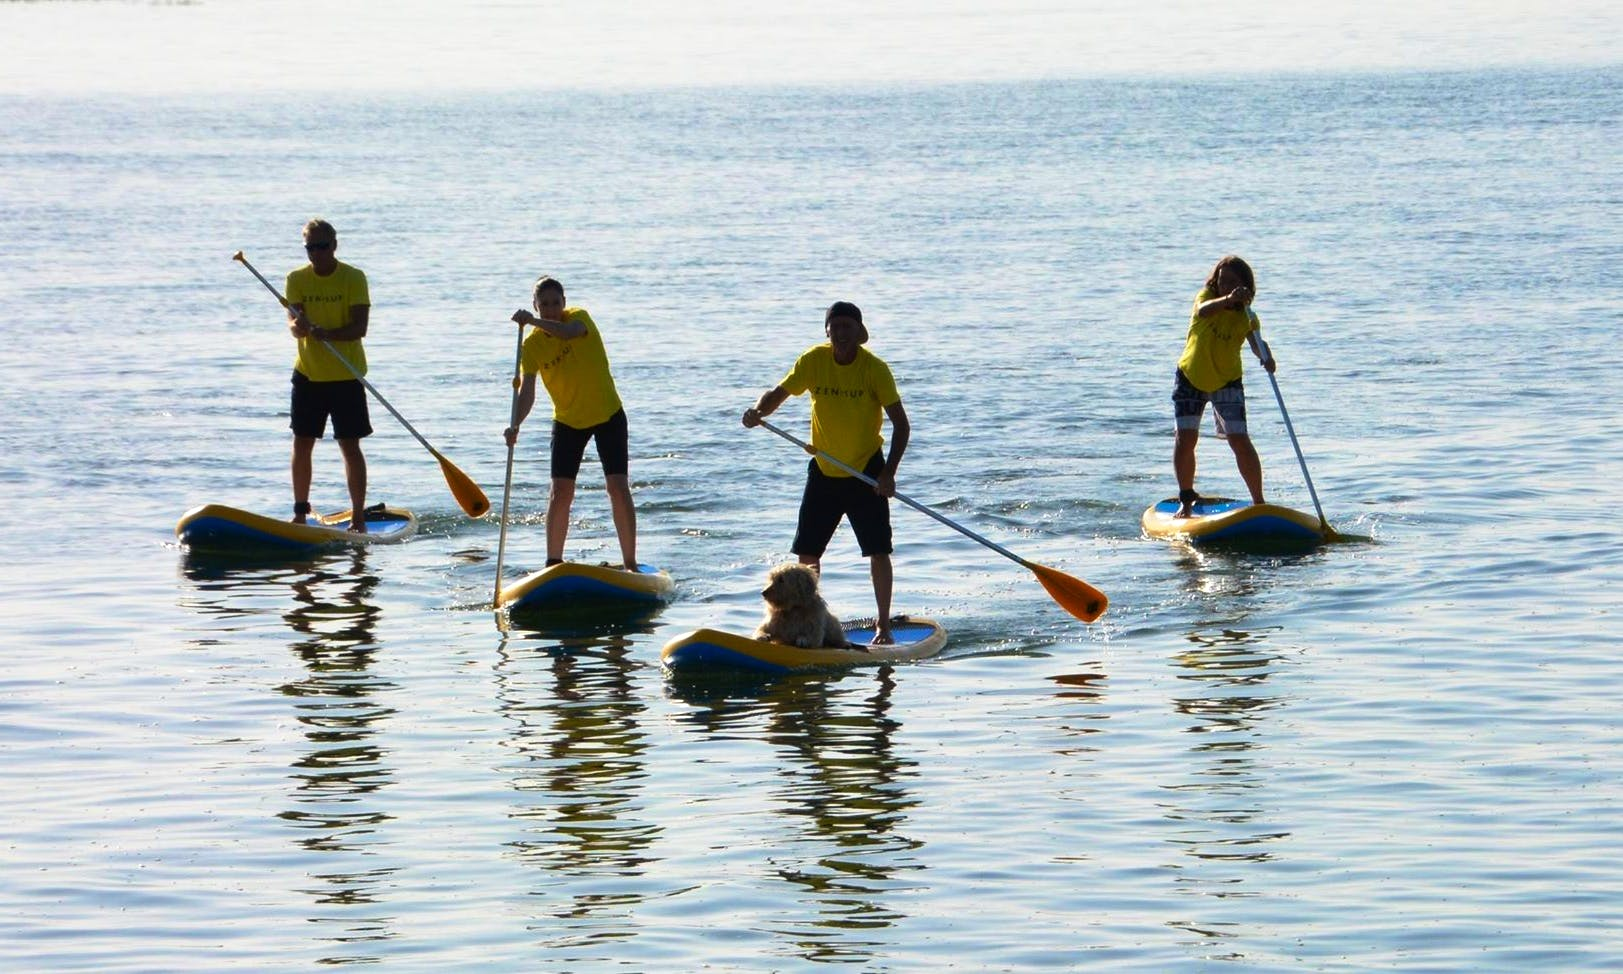 SUP Rental, Lessons, Tours and Yoga in Quarteira